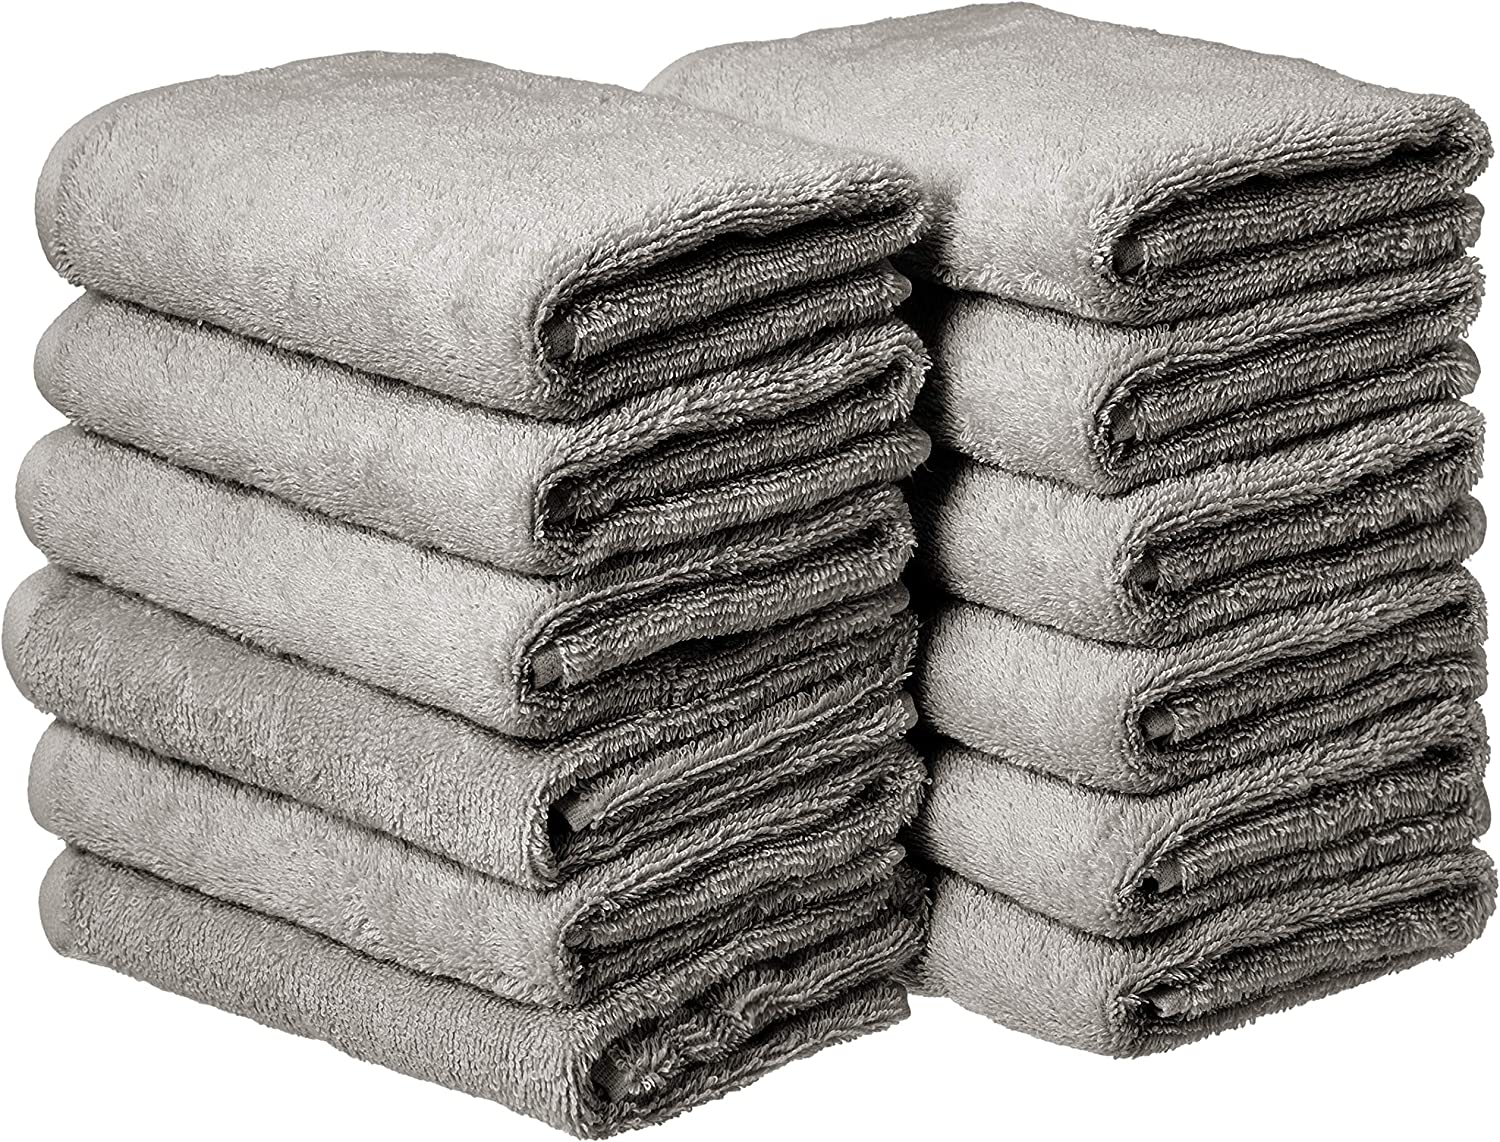 Amazon Com Amazon Basics Cotton Hand Towels Gray Pack Of 12 Home Kitchen